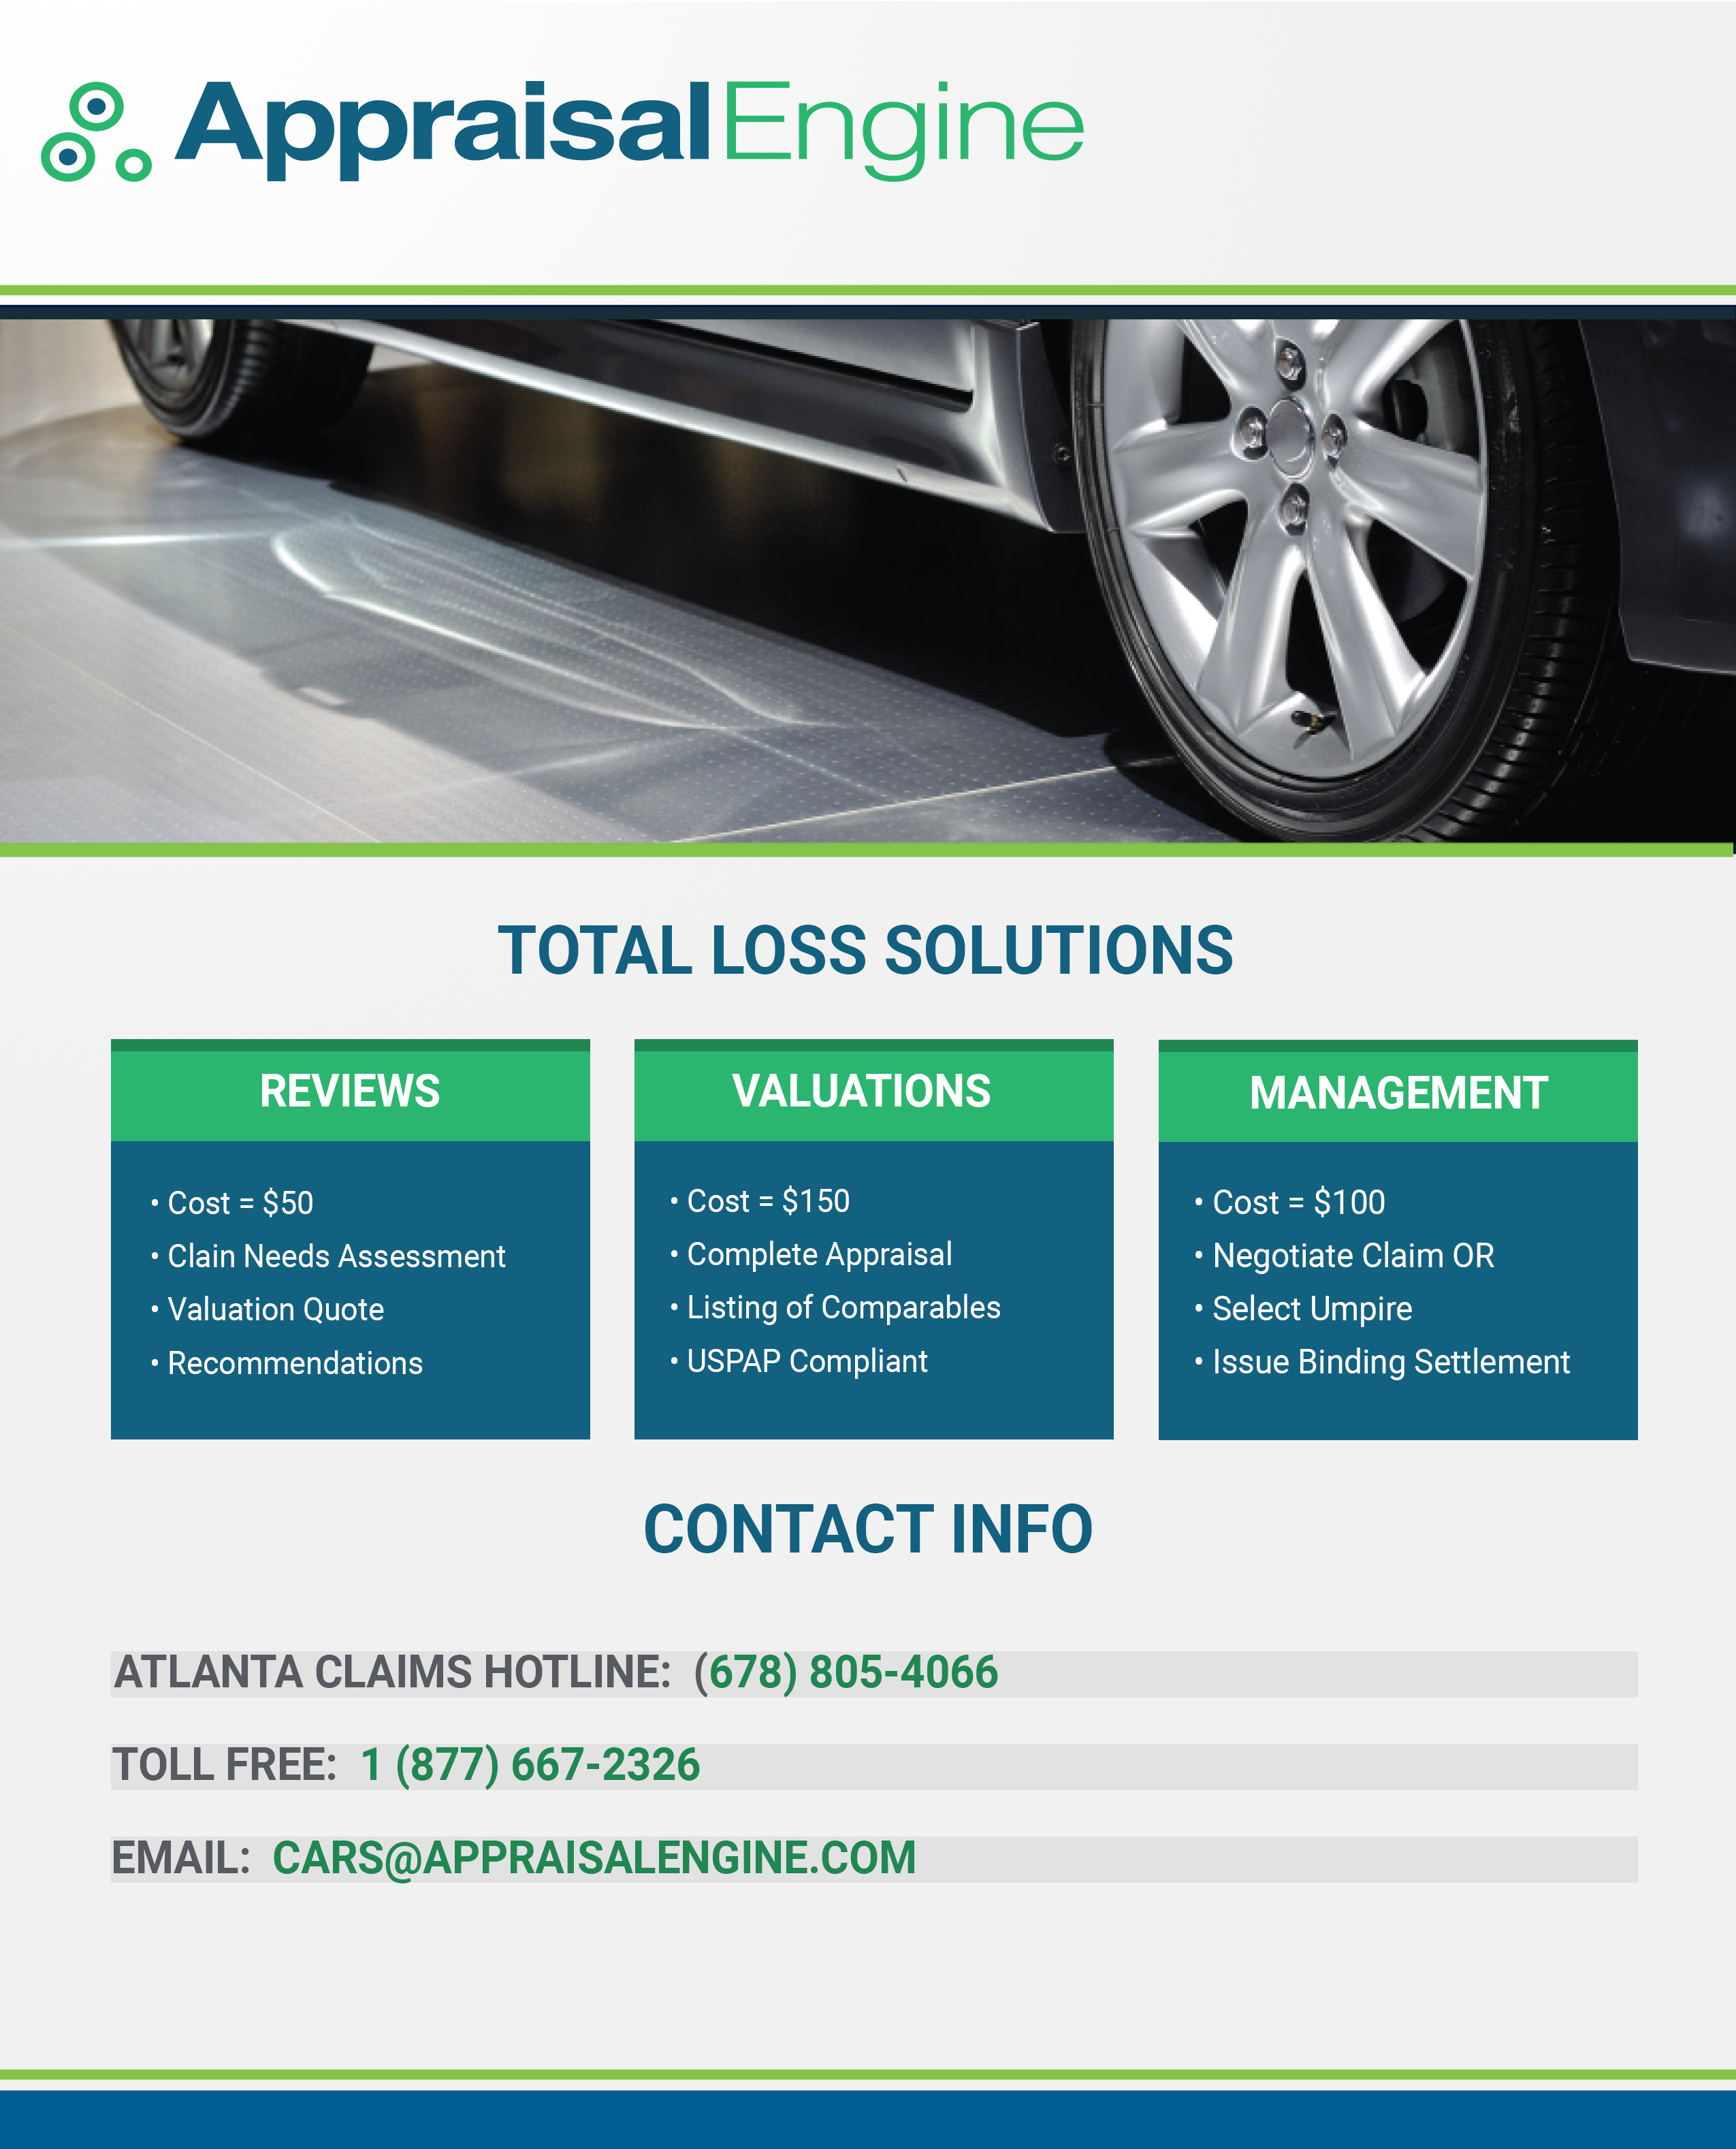 TOTAL LOSS APPRAISAL SERVICES